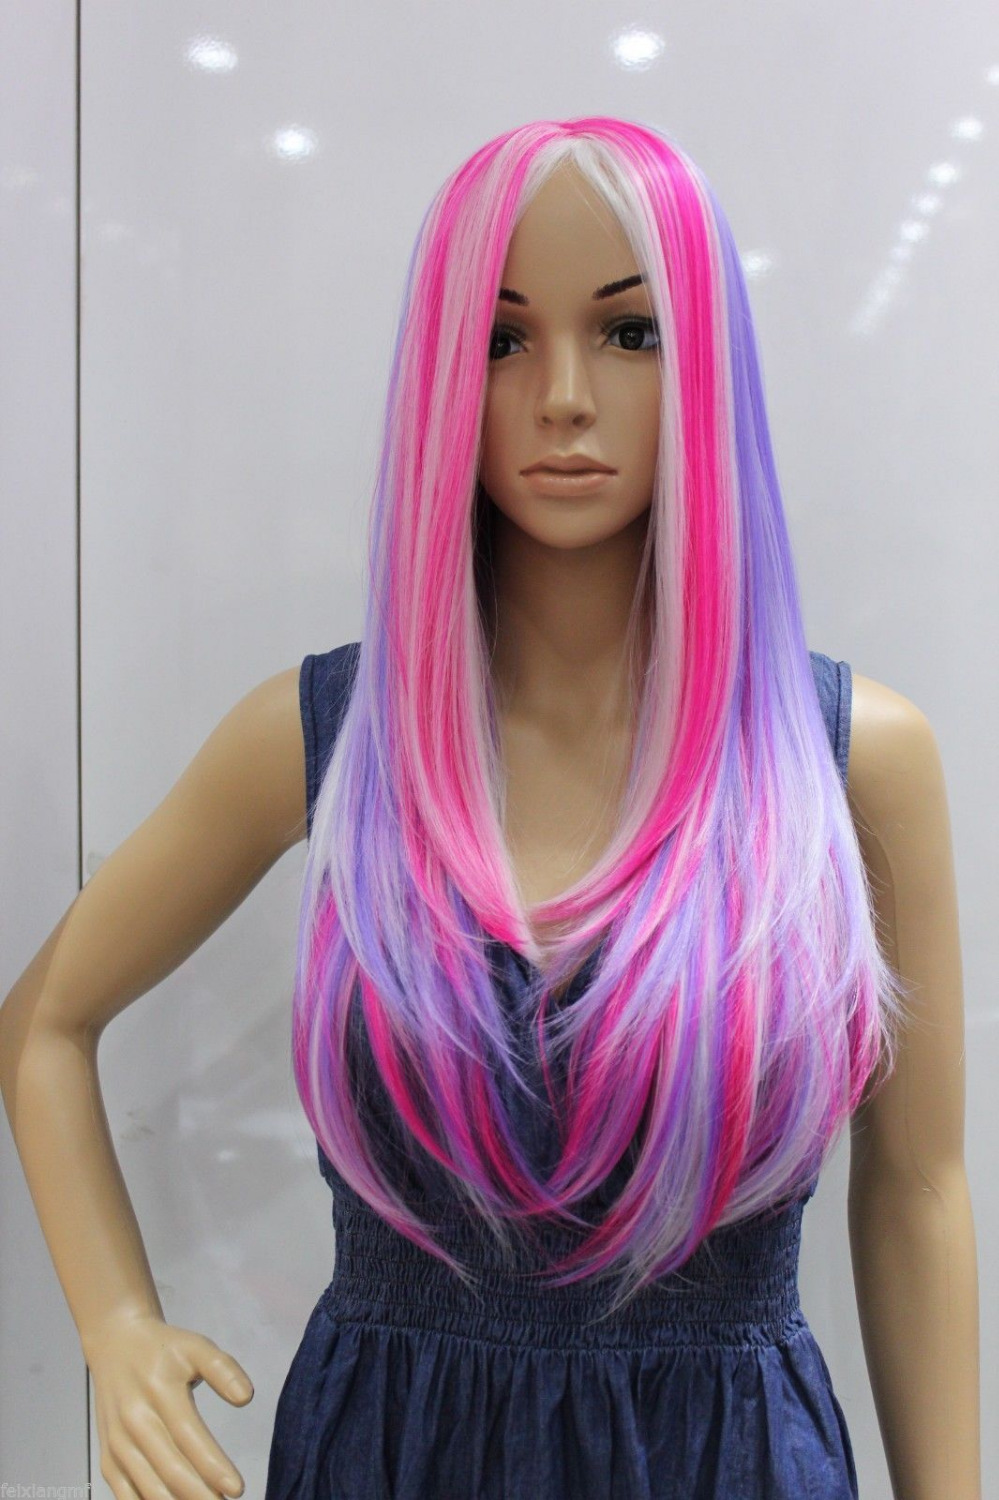 free shipping USPS to USA New color cosplay wig pink blue